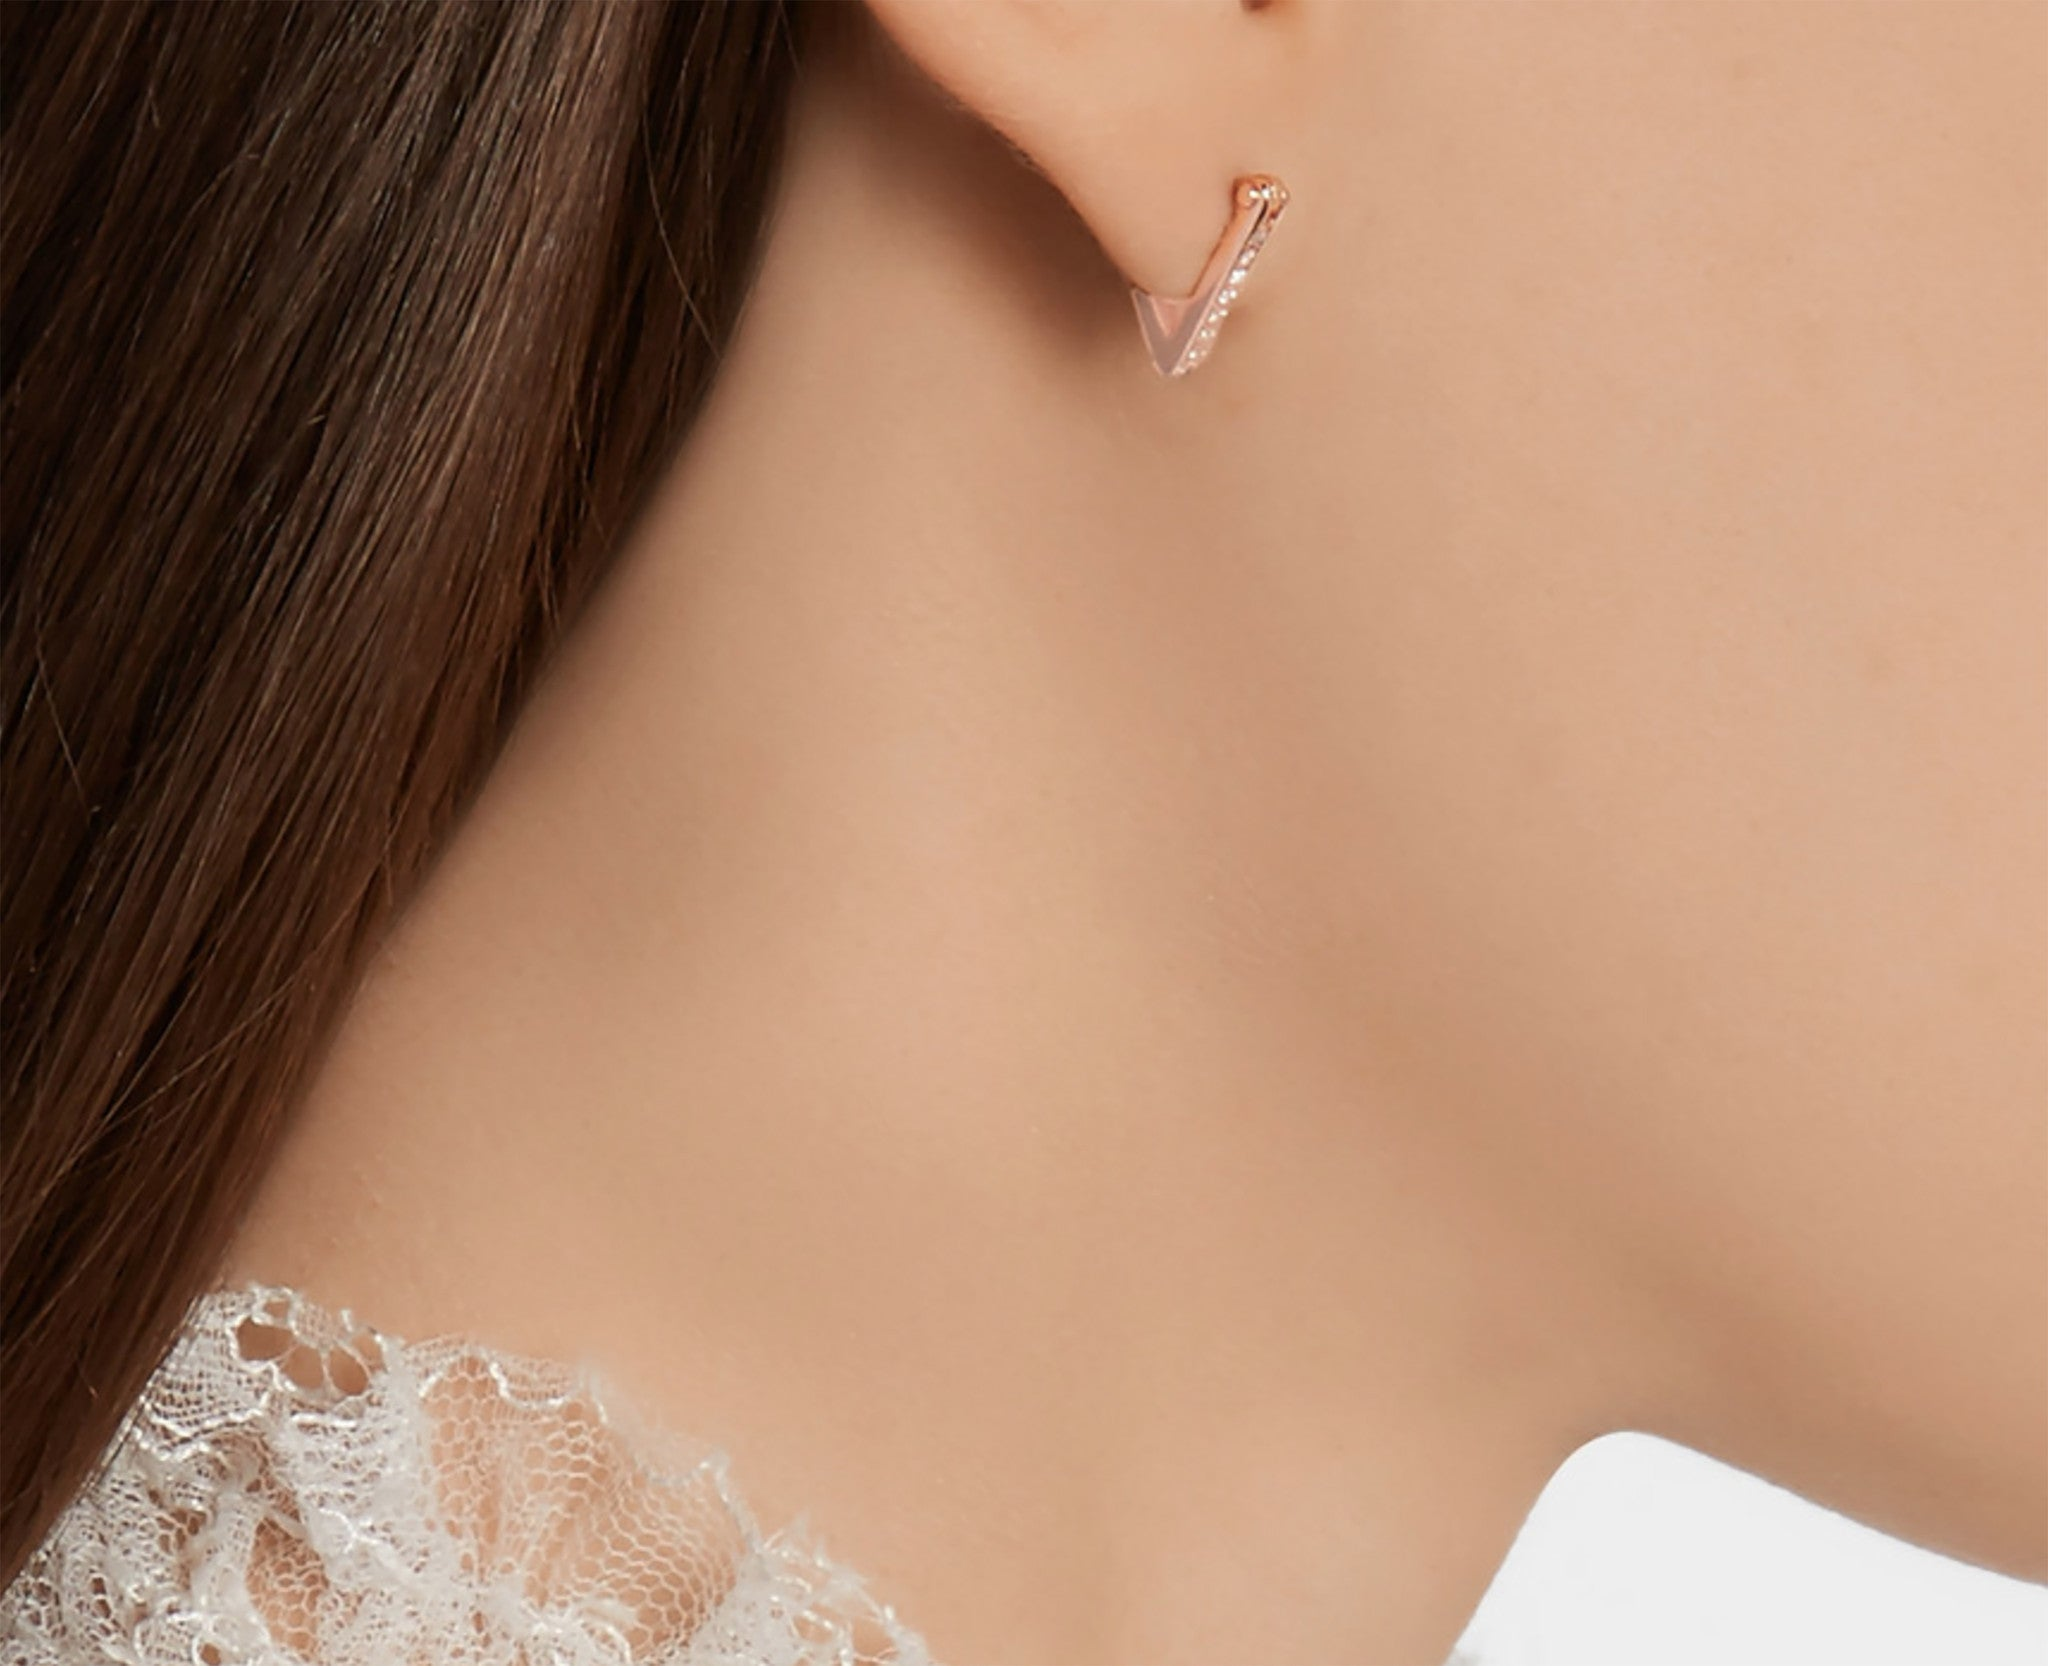 Micro Pave Diamonds Triangle Hoop Earrings Wendy Nichol fine jewelry designer 14k Gold Yellow Rose White Diamonds Black Diamonds V shape ear hugging simple delicate Hoops Handmade in NYC New York City First Second Ear Piercing Lower Lobe Upper Lobe Nose